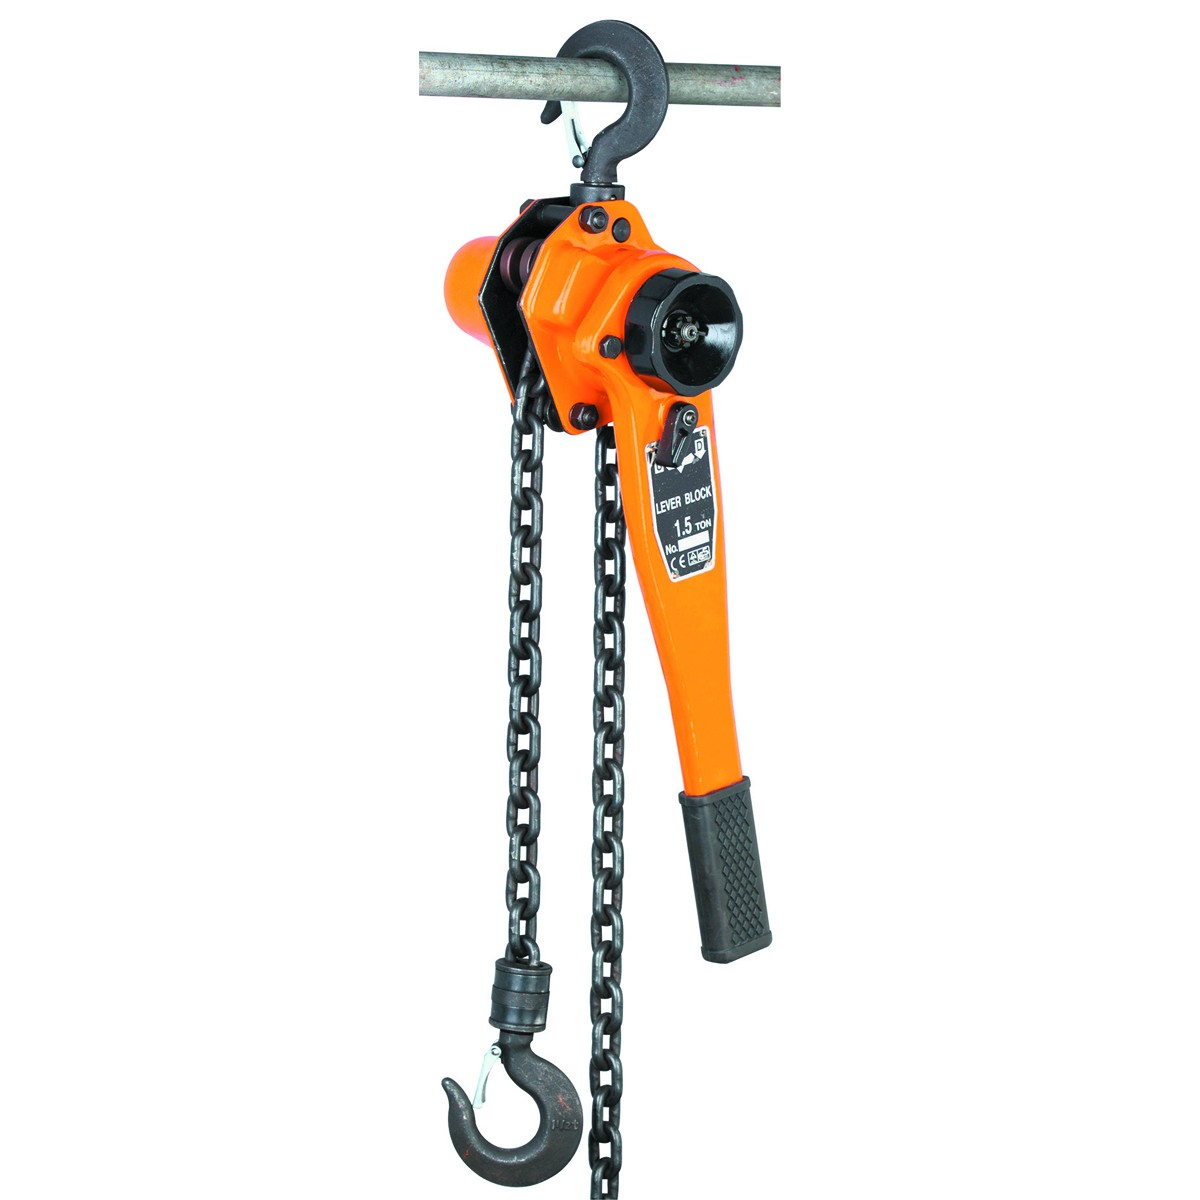 hight resolution of lever chain puller lever chain puller suppliers and manufacturers at alibaba com